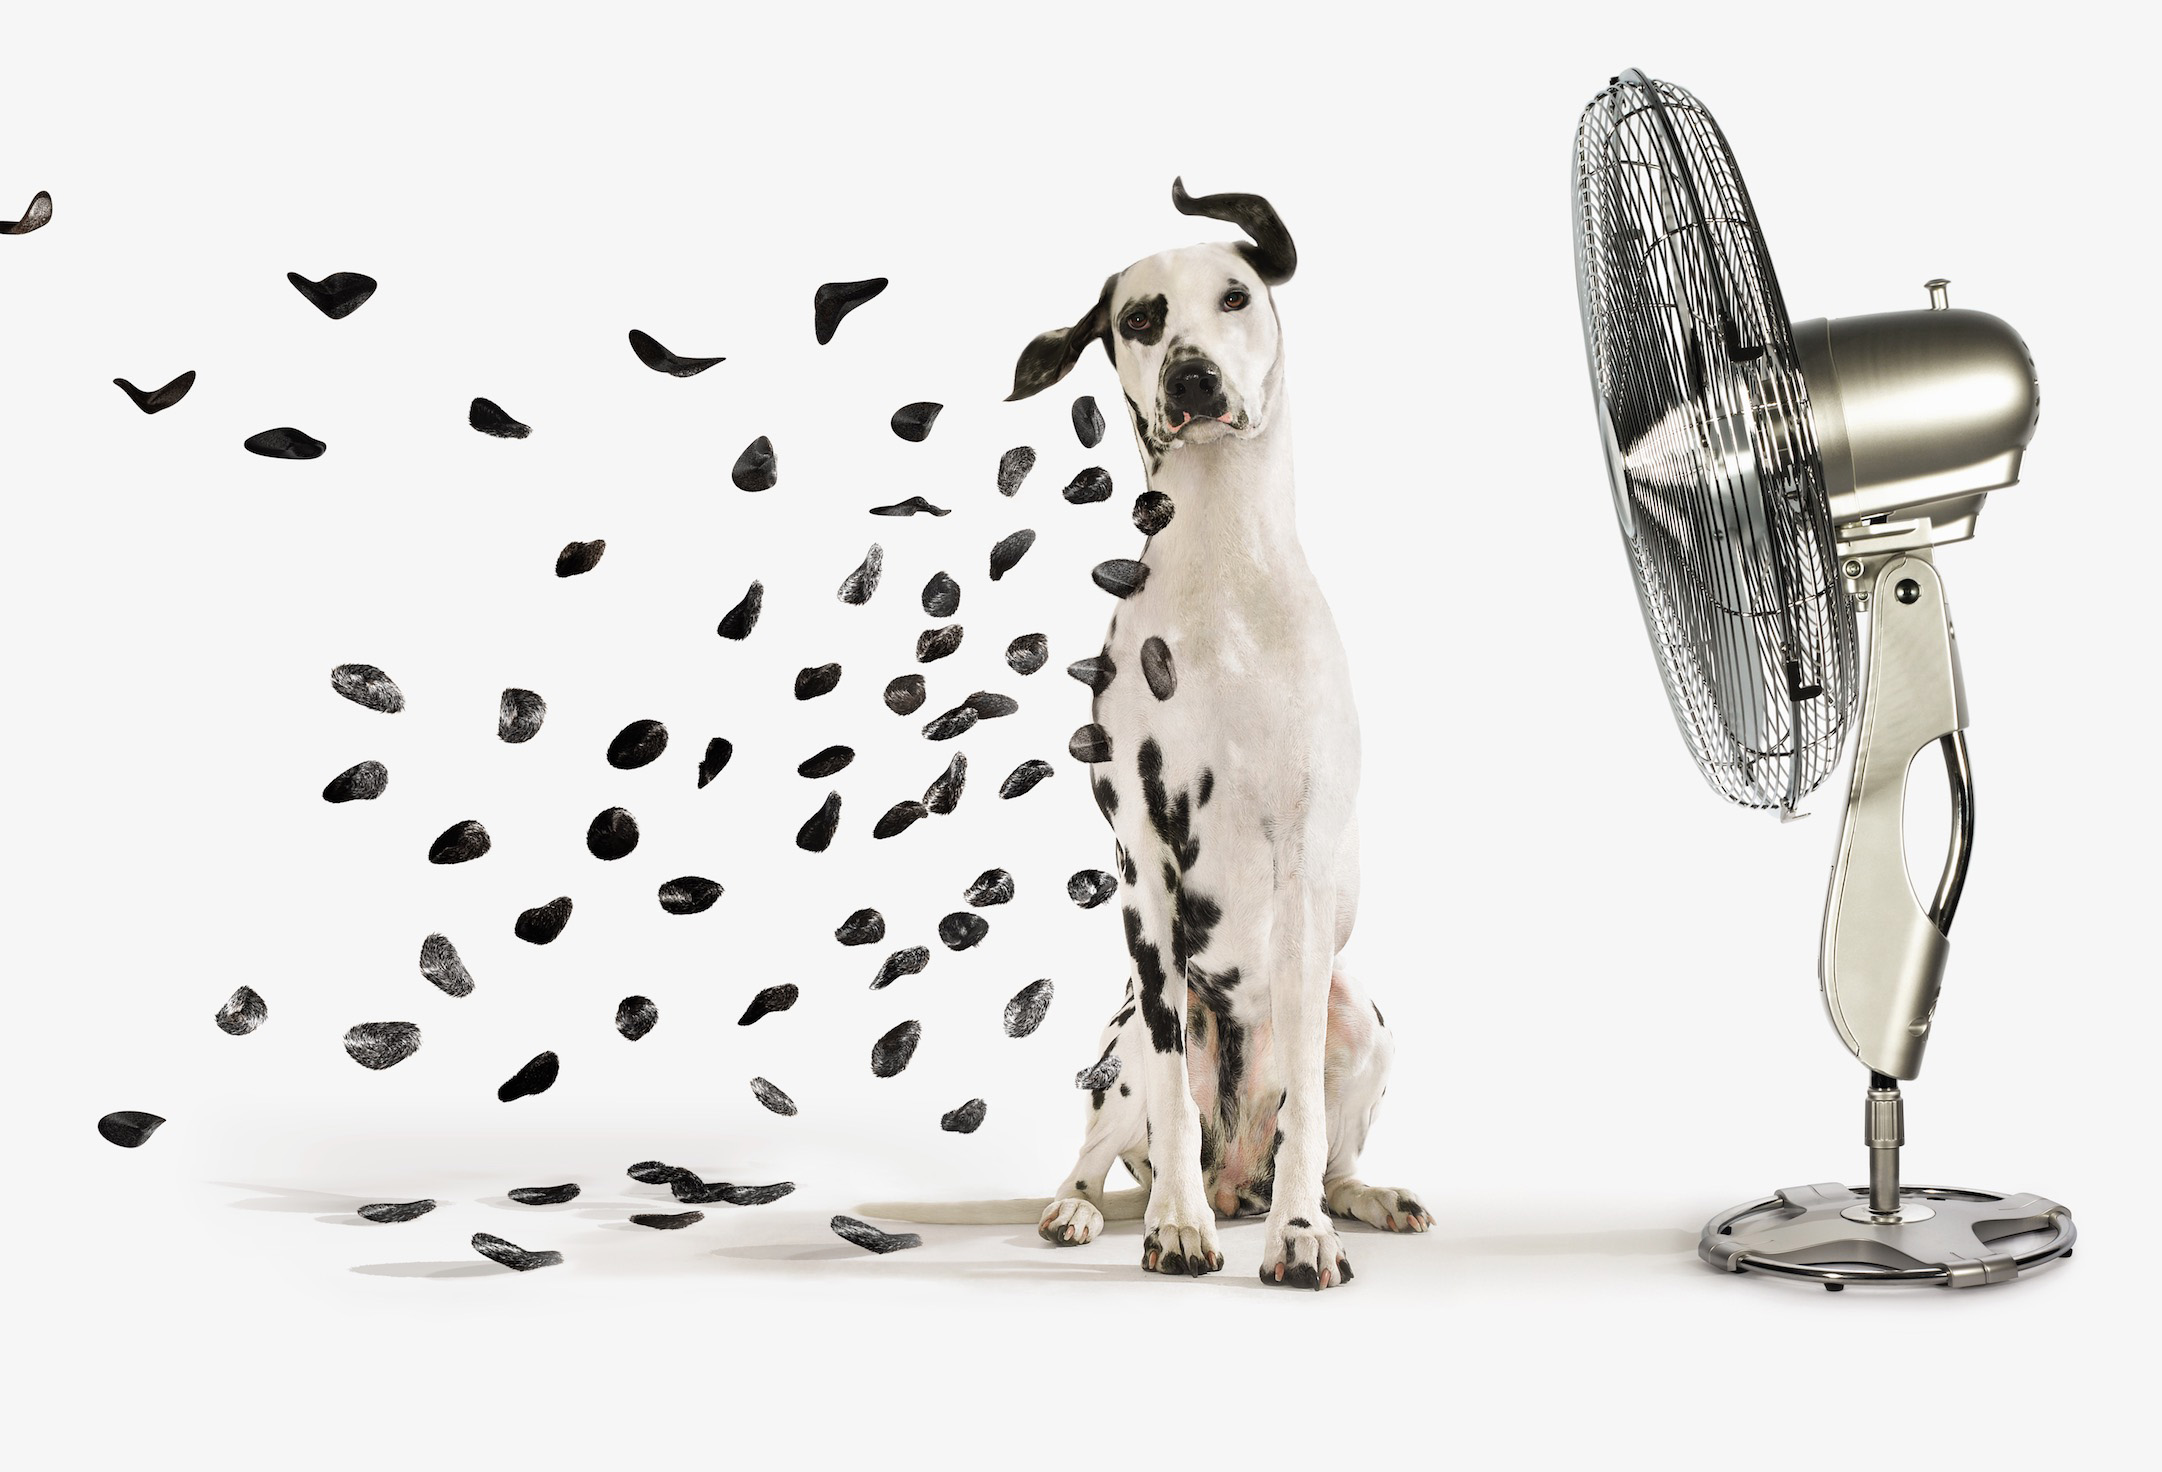 Fan Blowing spots off Dalmatian dog CopyrightGandeeVasanDog104